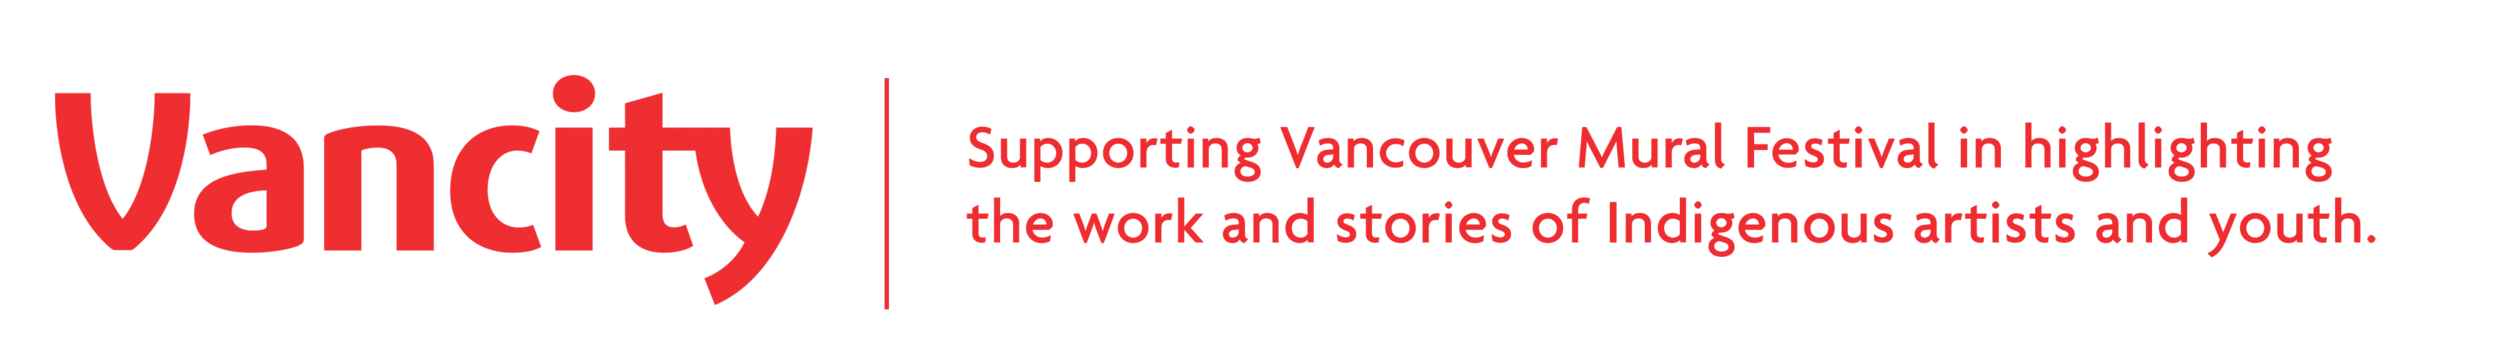 VANCITY SUPPORTING V10.png